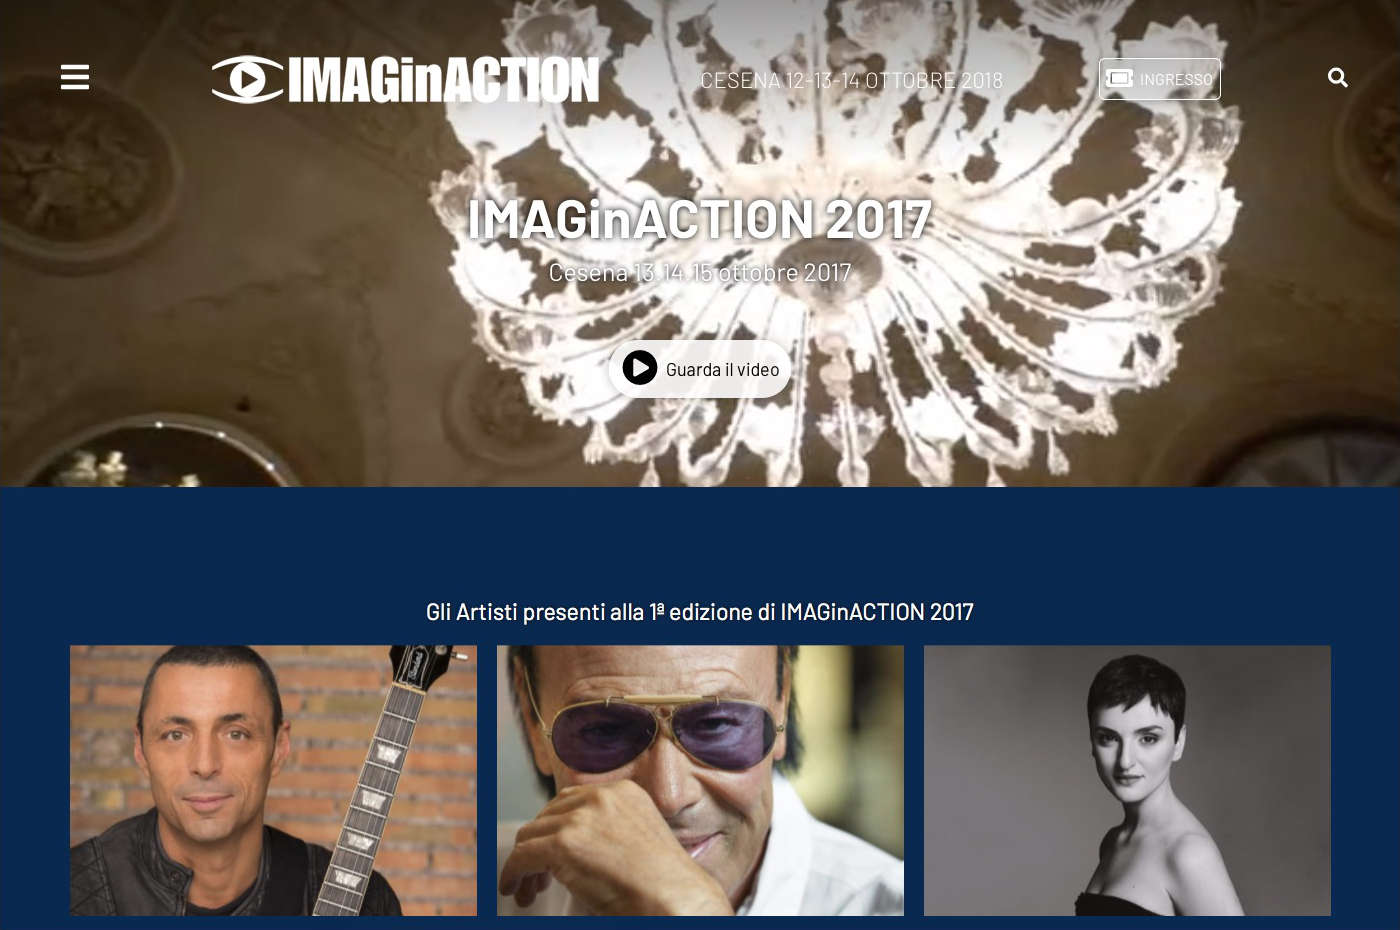 IMAGinACTION 2017